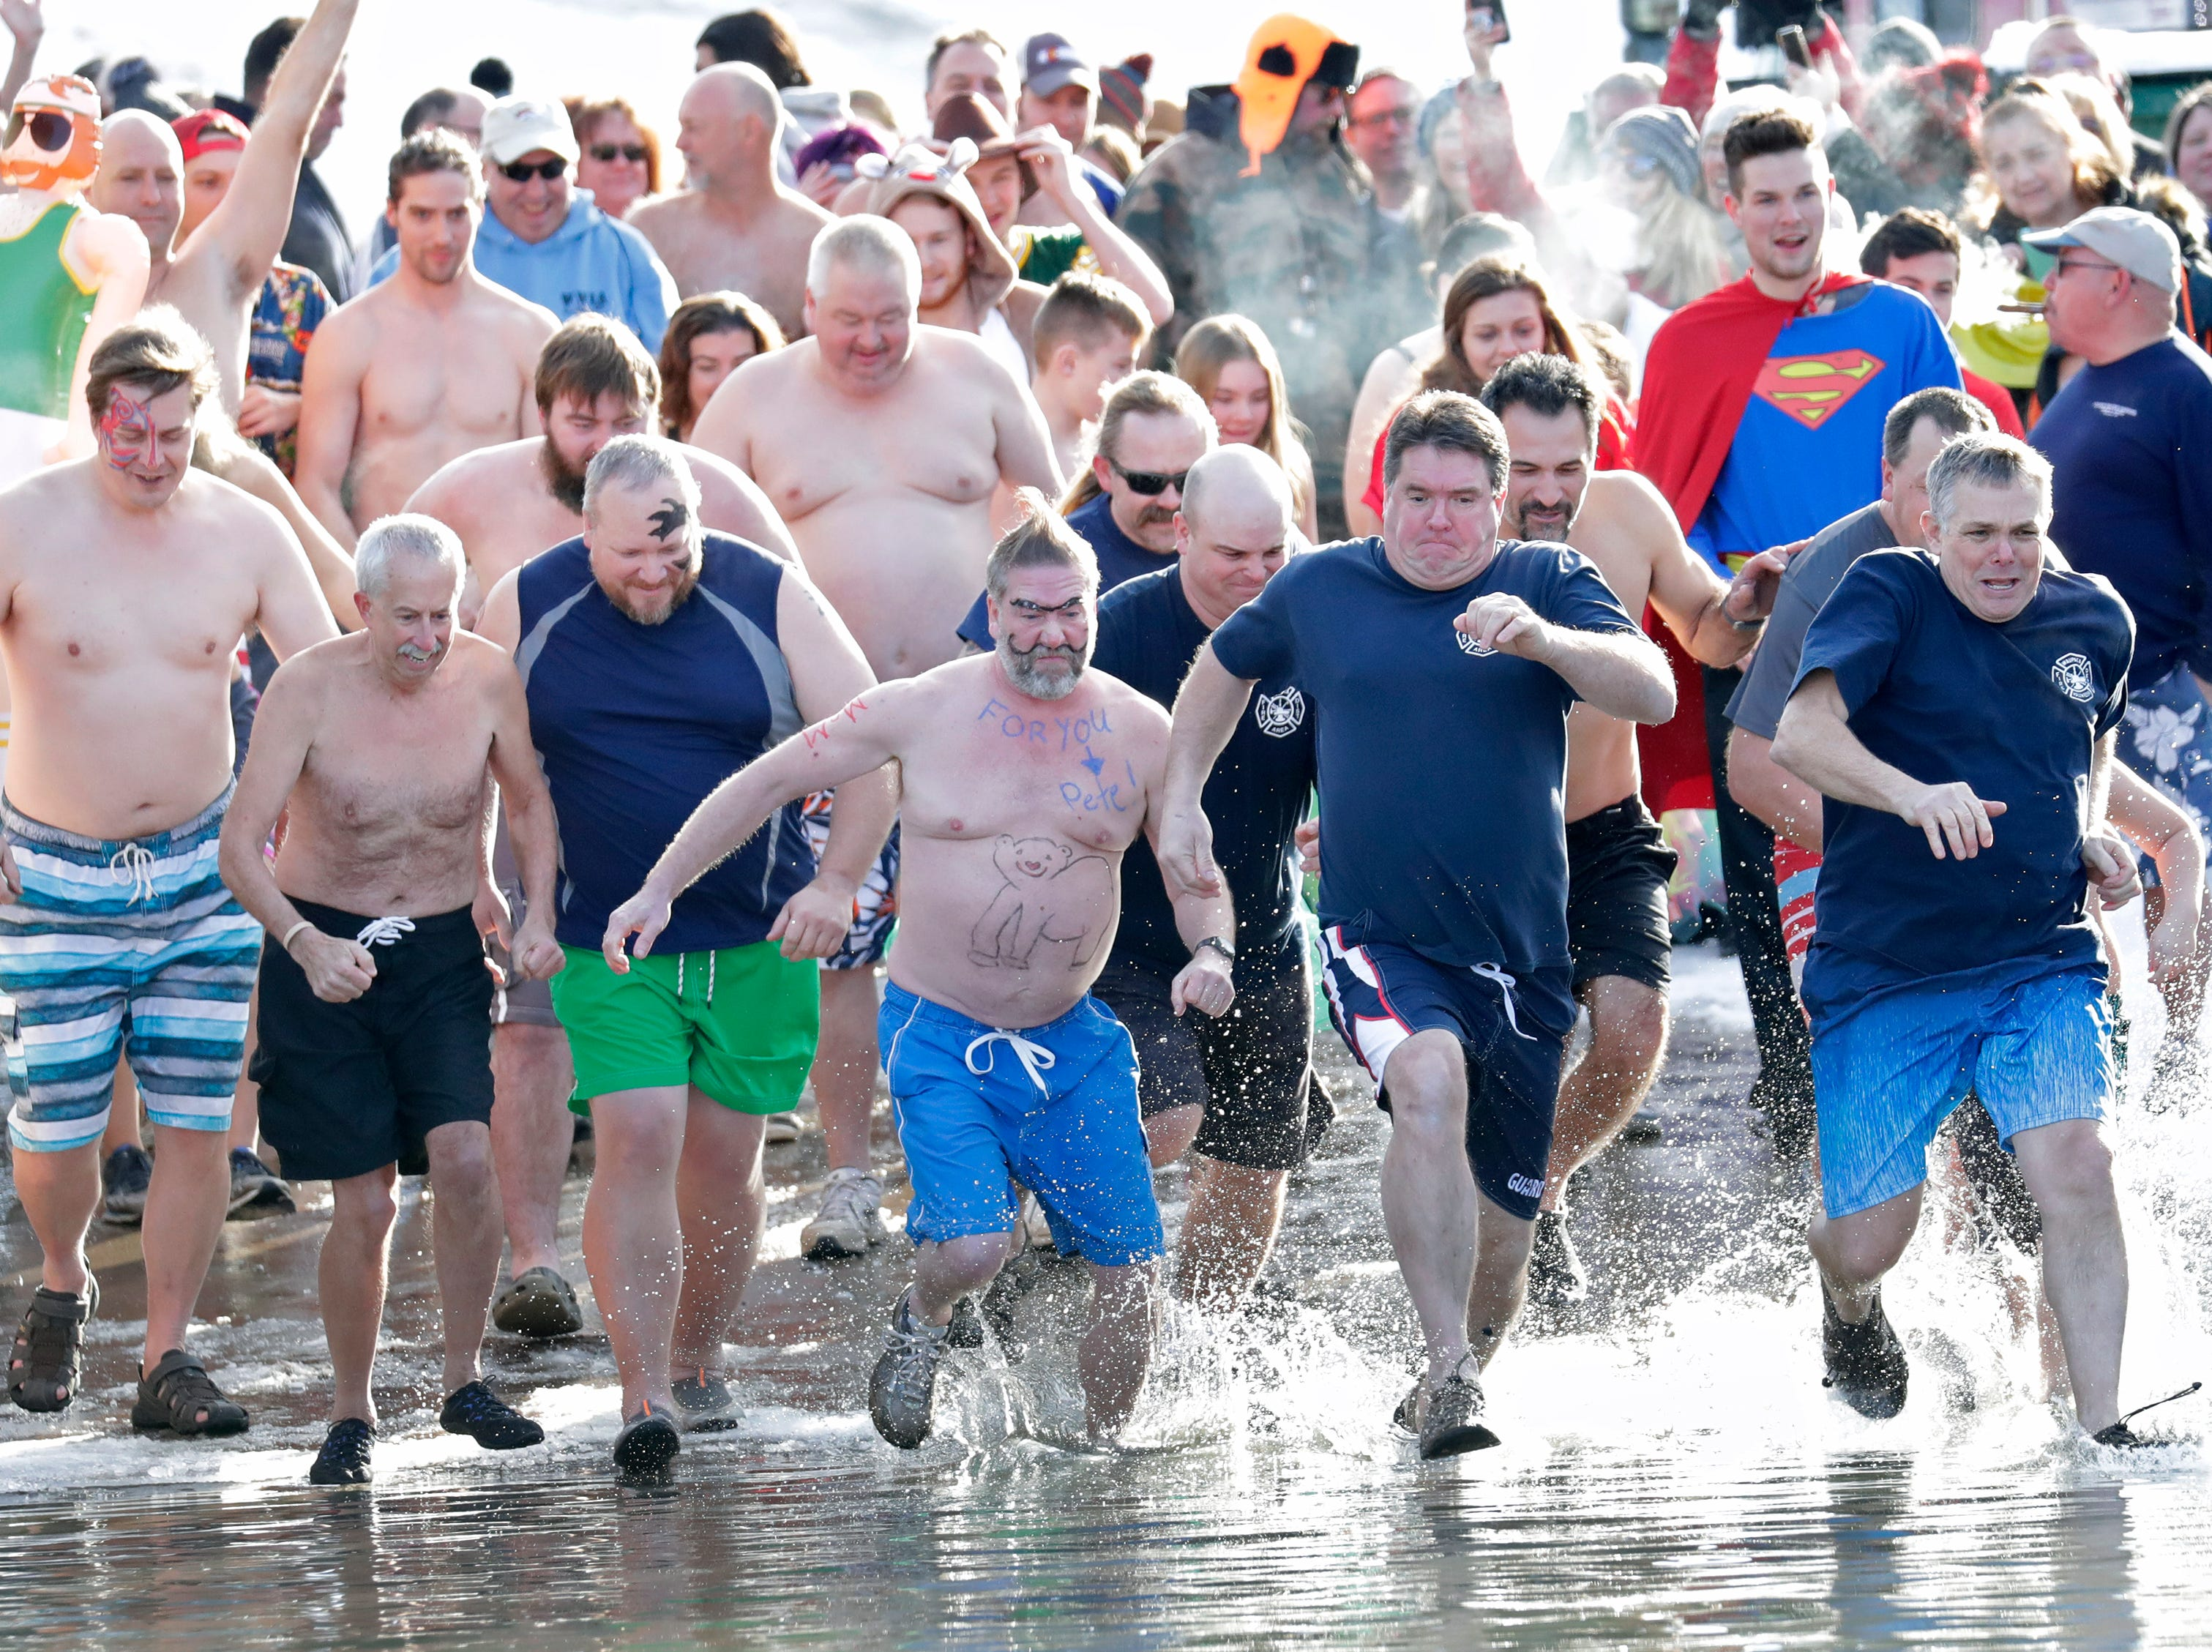 Particpants rush the bitter water at the start of the Polar Bear Plunge Tuesday, January 1, 2019, at Becker Marine on Lime Kiln Lake in Waupaca, Wis. Dan Powers/USA TODAY NETWORK-Wisconsin